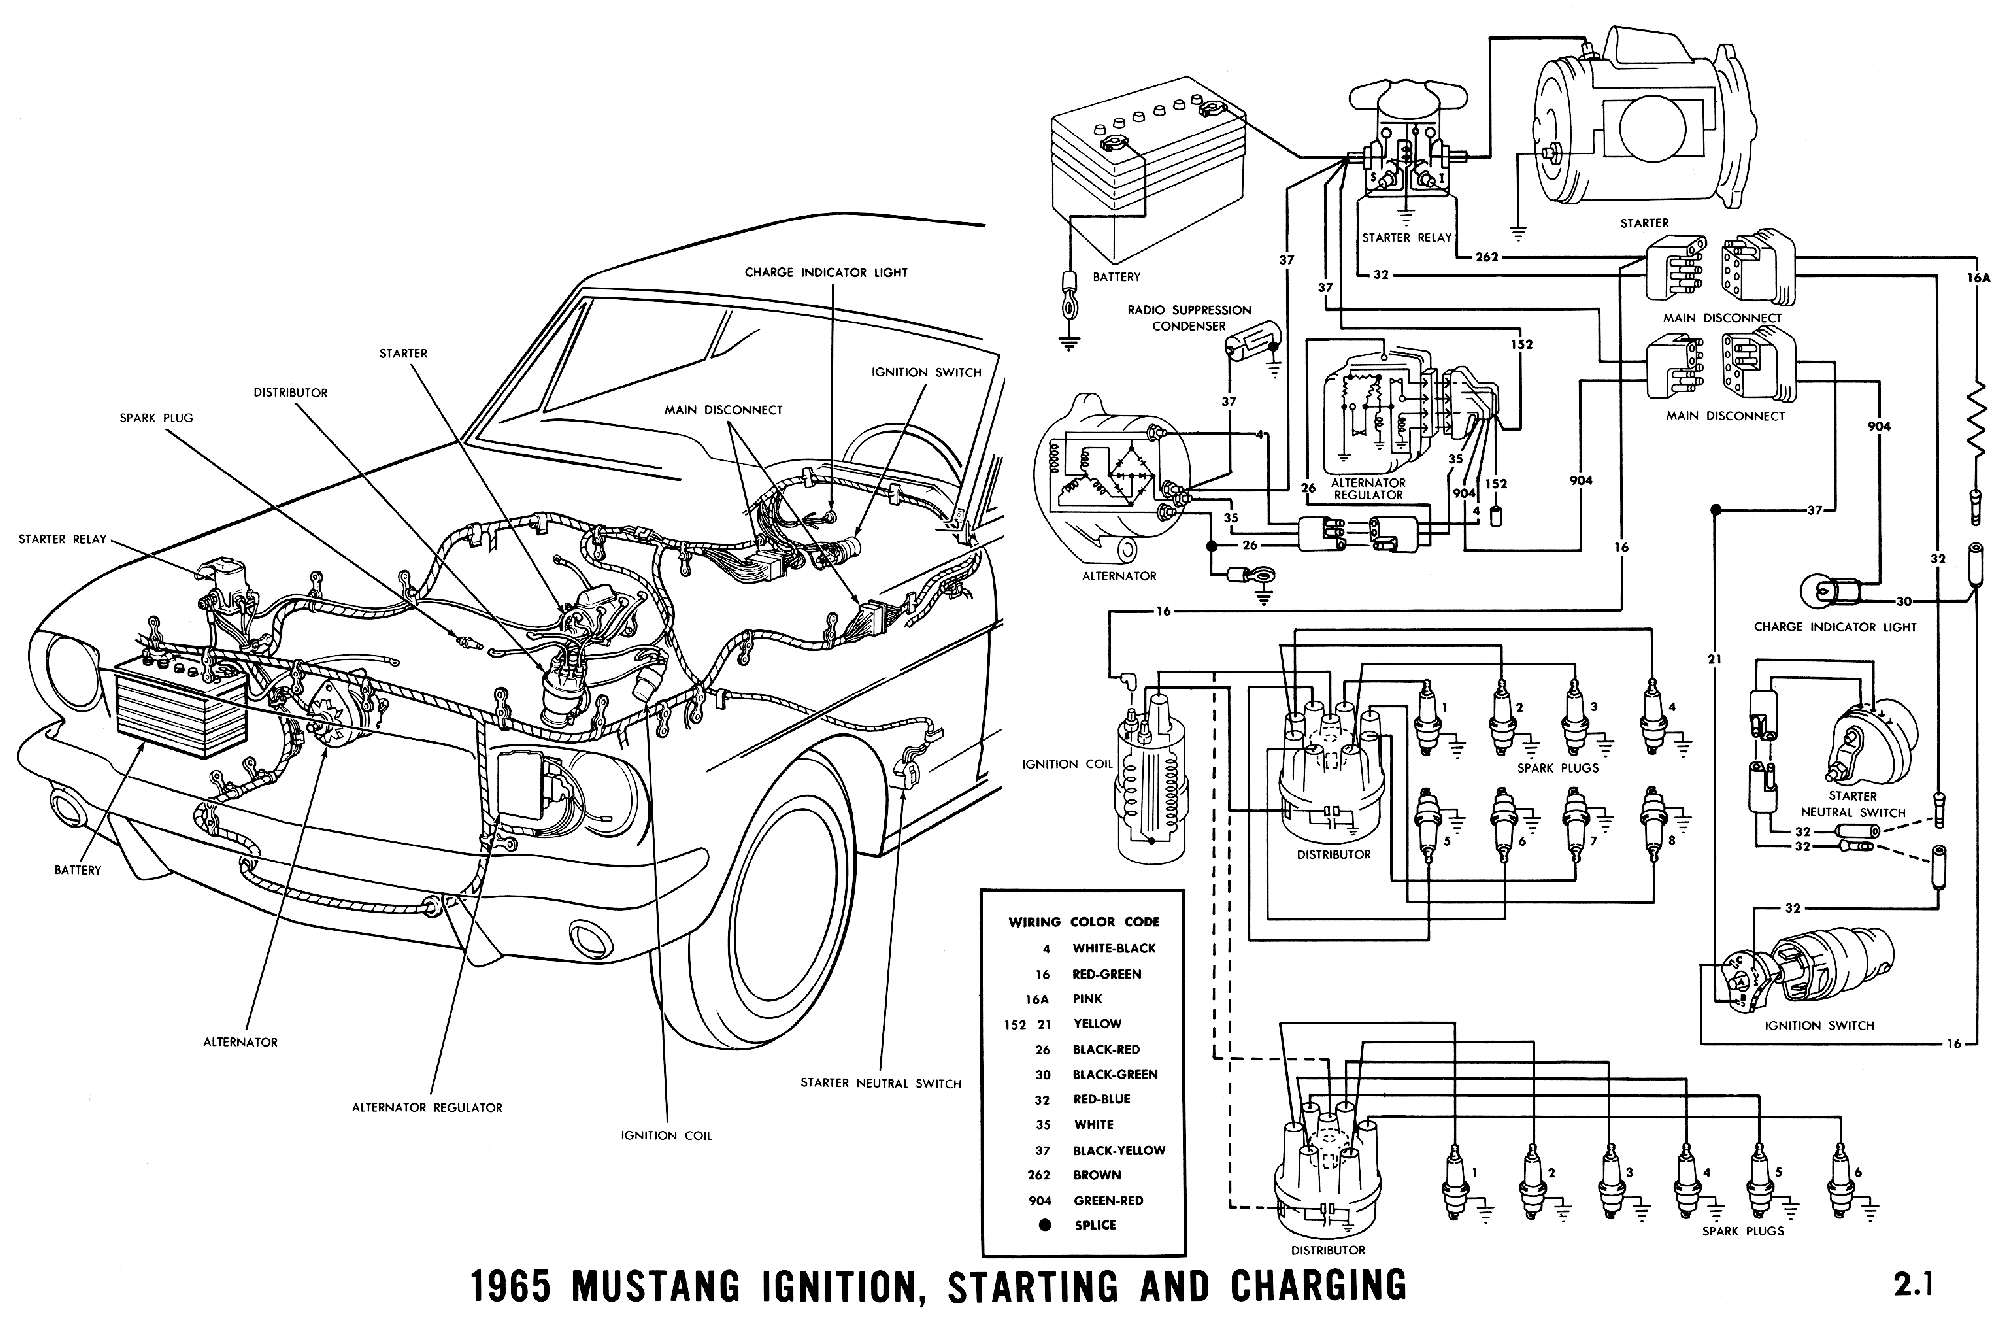 Mustang Gt Wire Diagram Wiring Library 1956 Ford Wagon Car 1965 Ignition Starting And Charging Pictorial Schematic